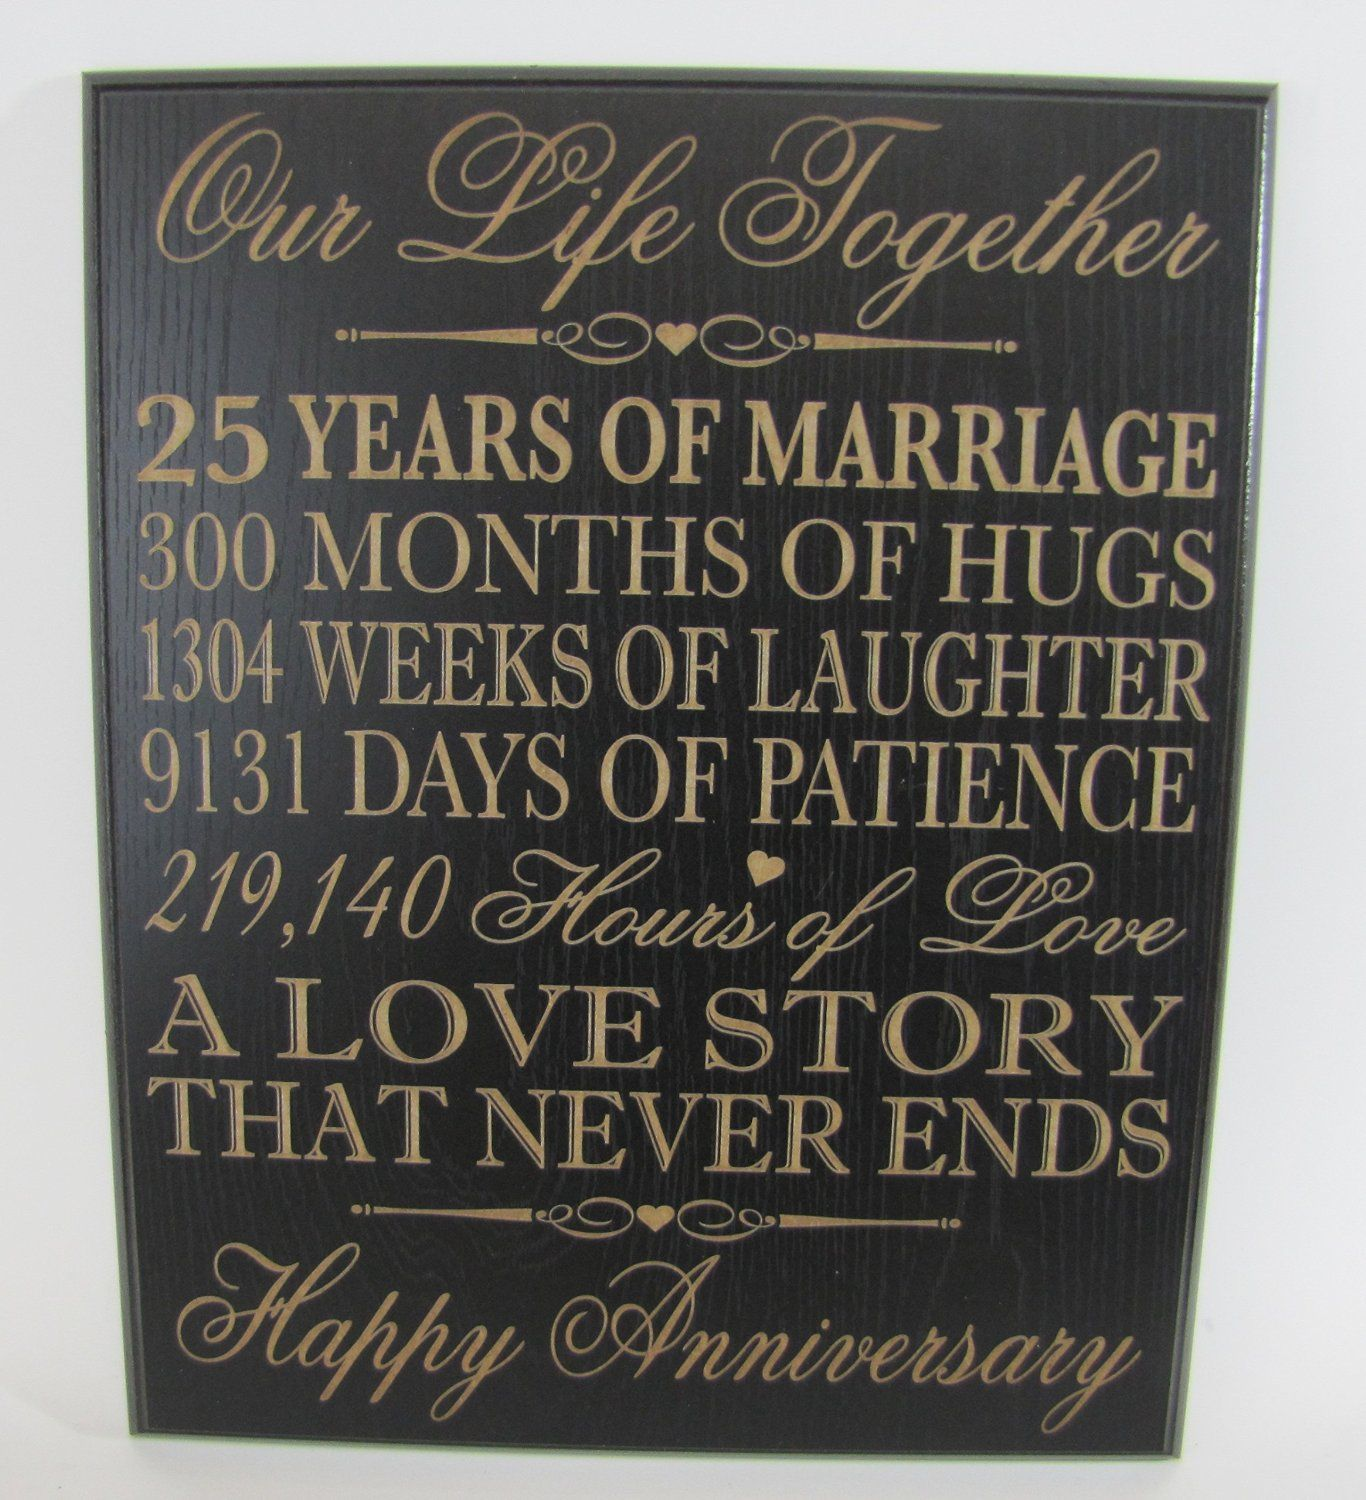 25th Wedding Anniversary Gift Ideas For Him: 25th Wedding Anniversary Wall Plaque Gifts